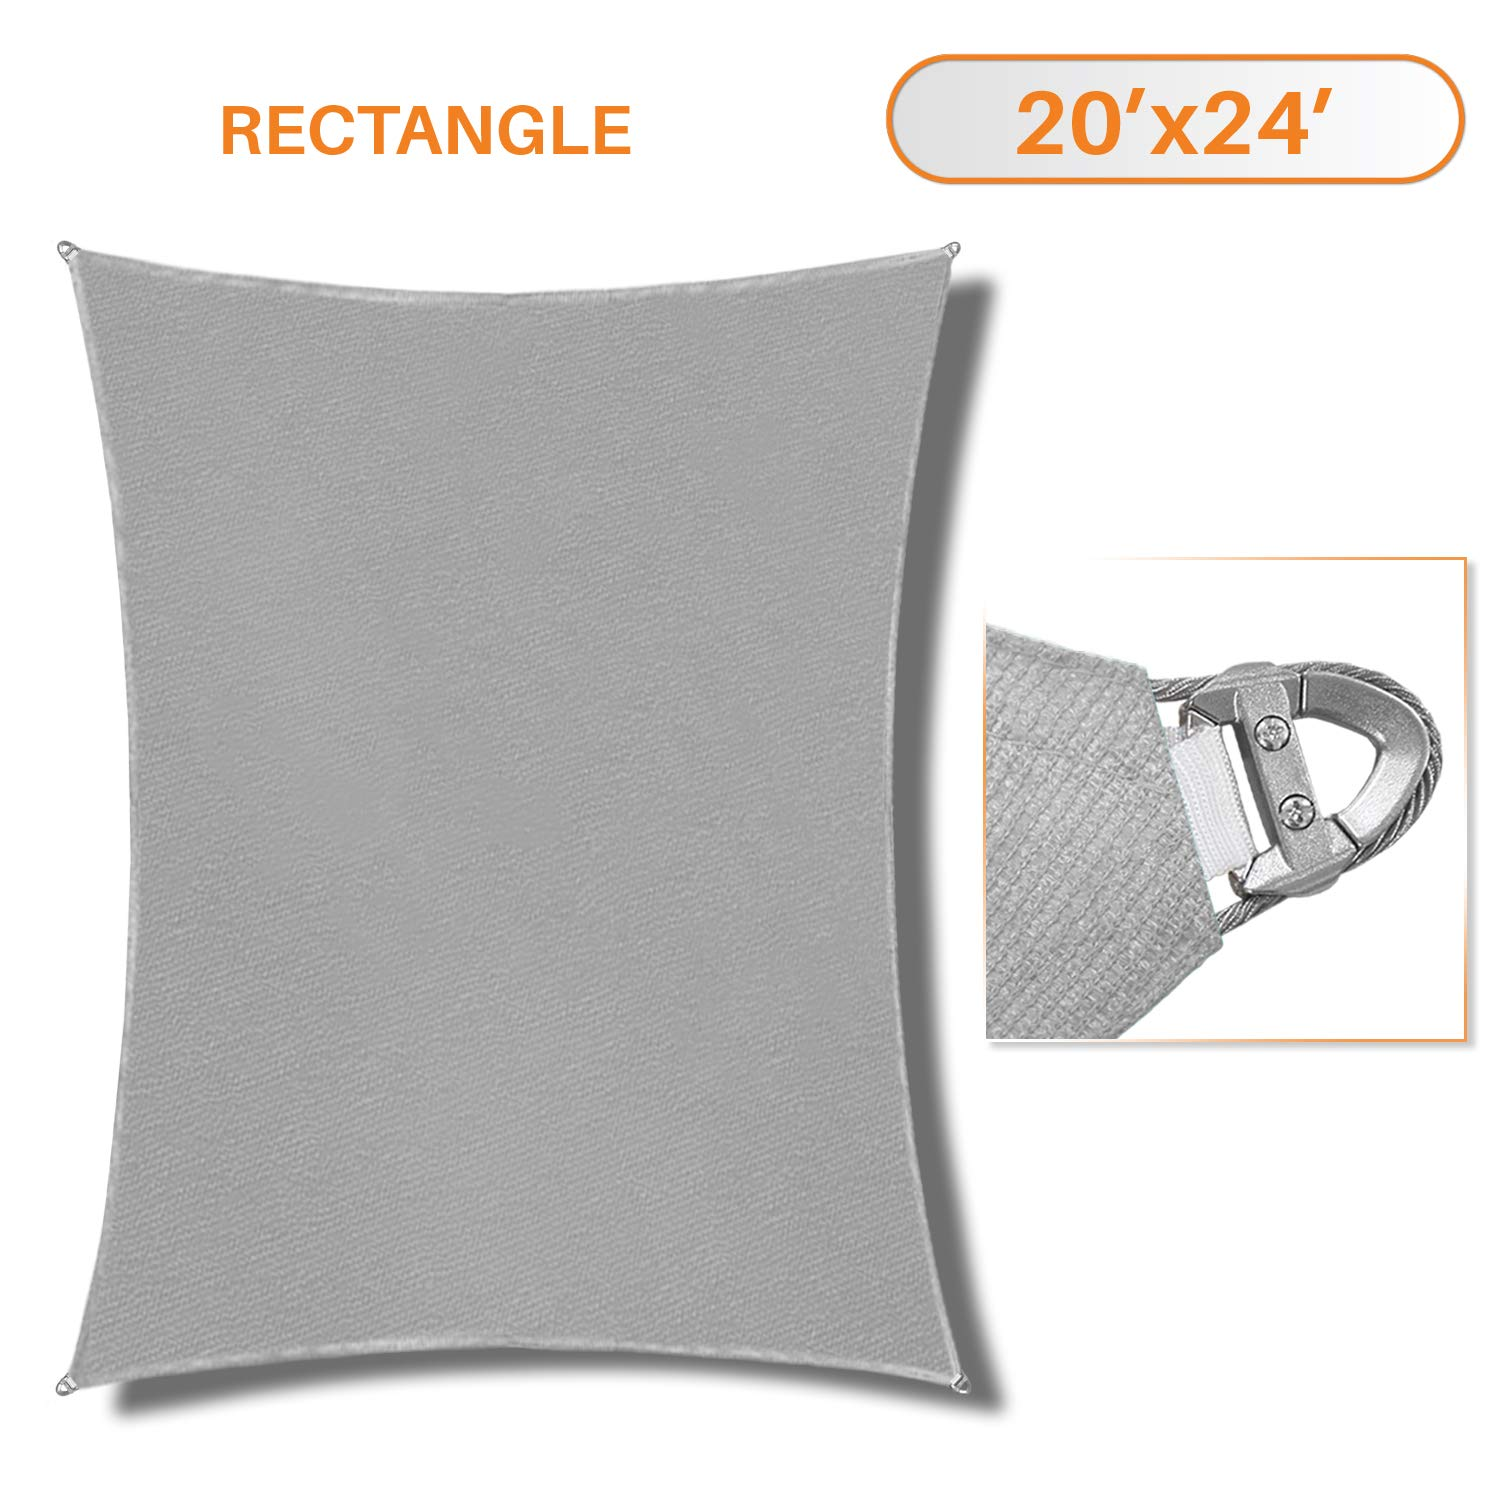 Sunshades Depot A Ring Design Steel Cable Wire Reinforcement Sun Shade Sails 20' x 24 ' Rectangle Light Gray Heavy Duty Permeable 260 GSM